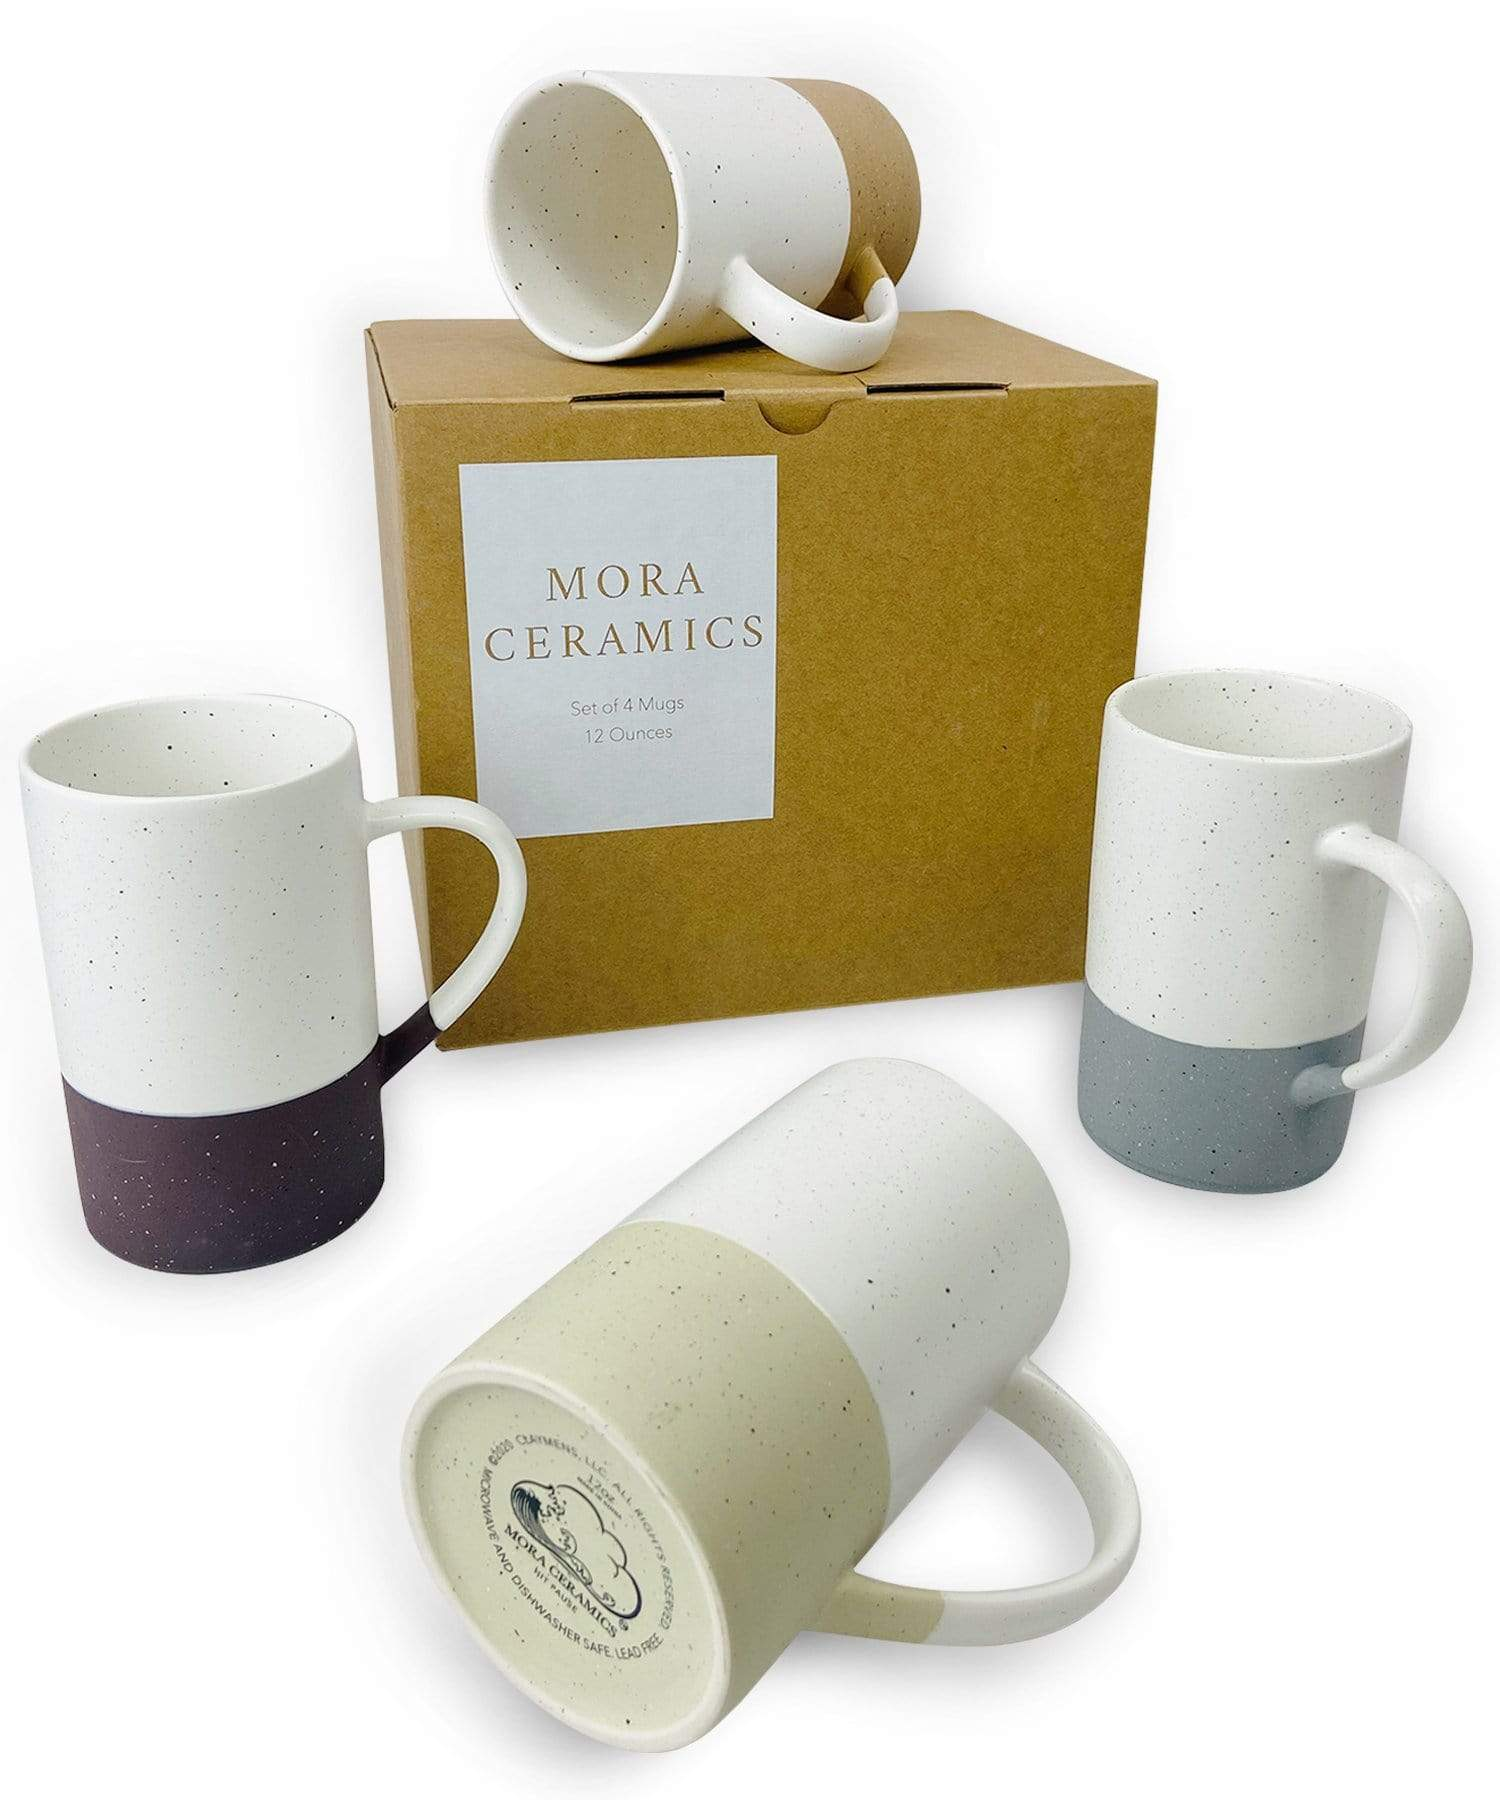 speckled coffee cups from Mora Ceramics in a set of four. colors inspired from minerals found in nature.